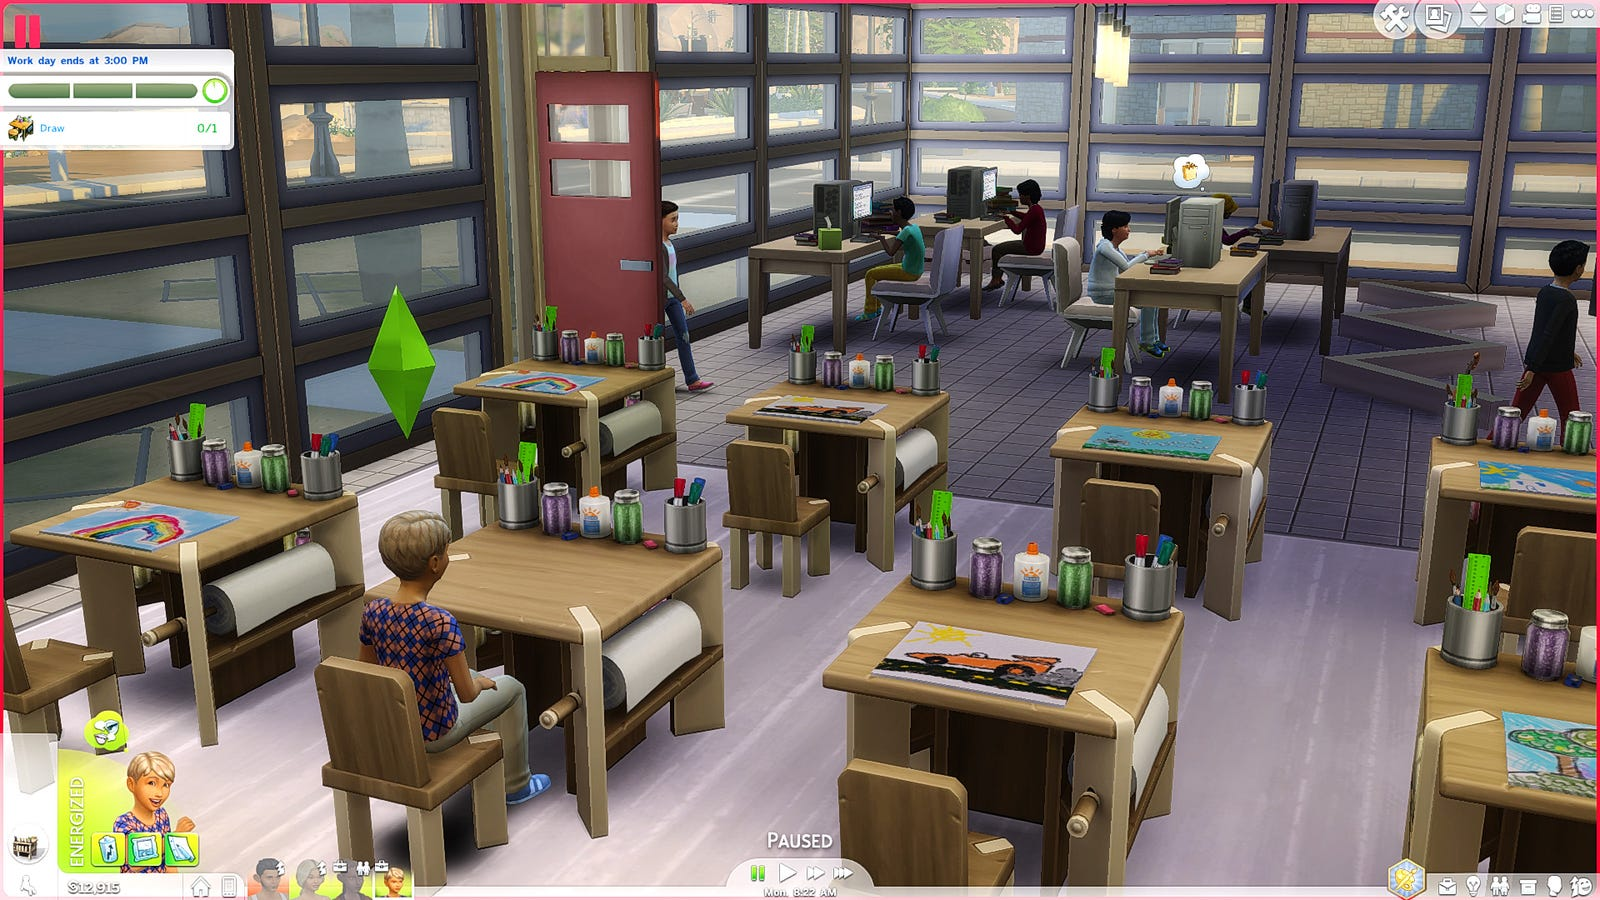 A Huge List of Best Sims 4 Mods in 2019 - PointsPrizes